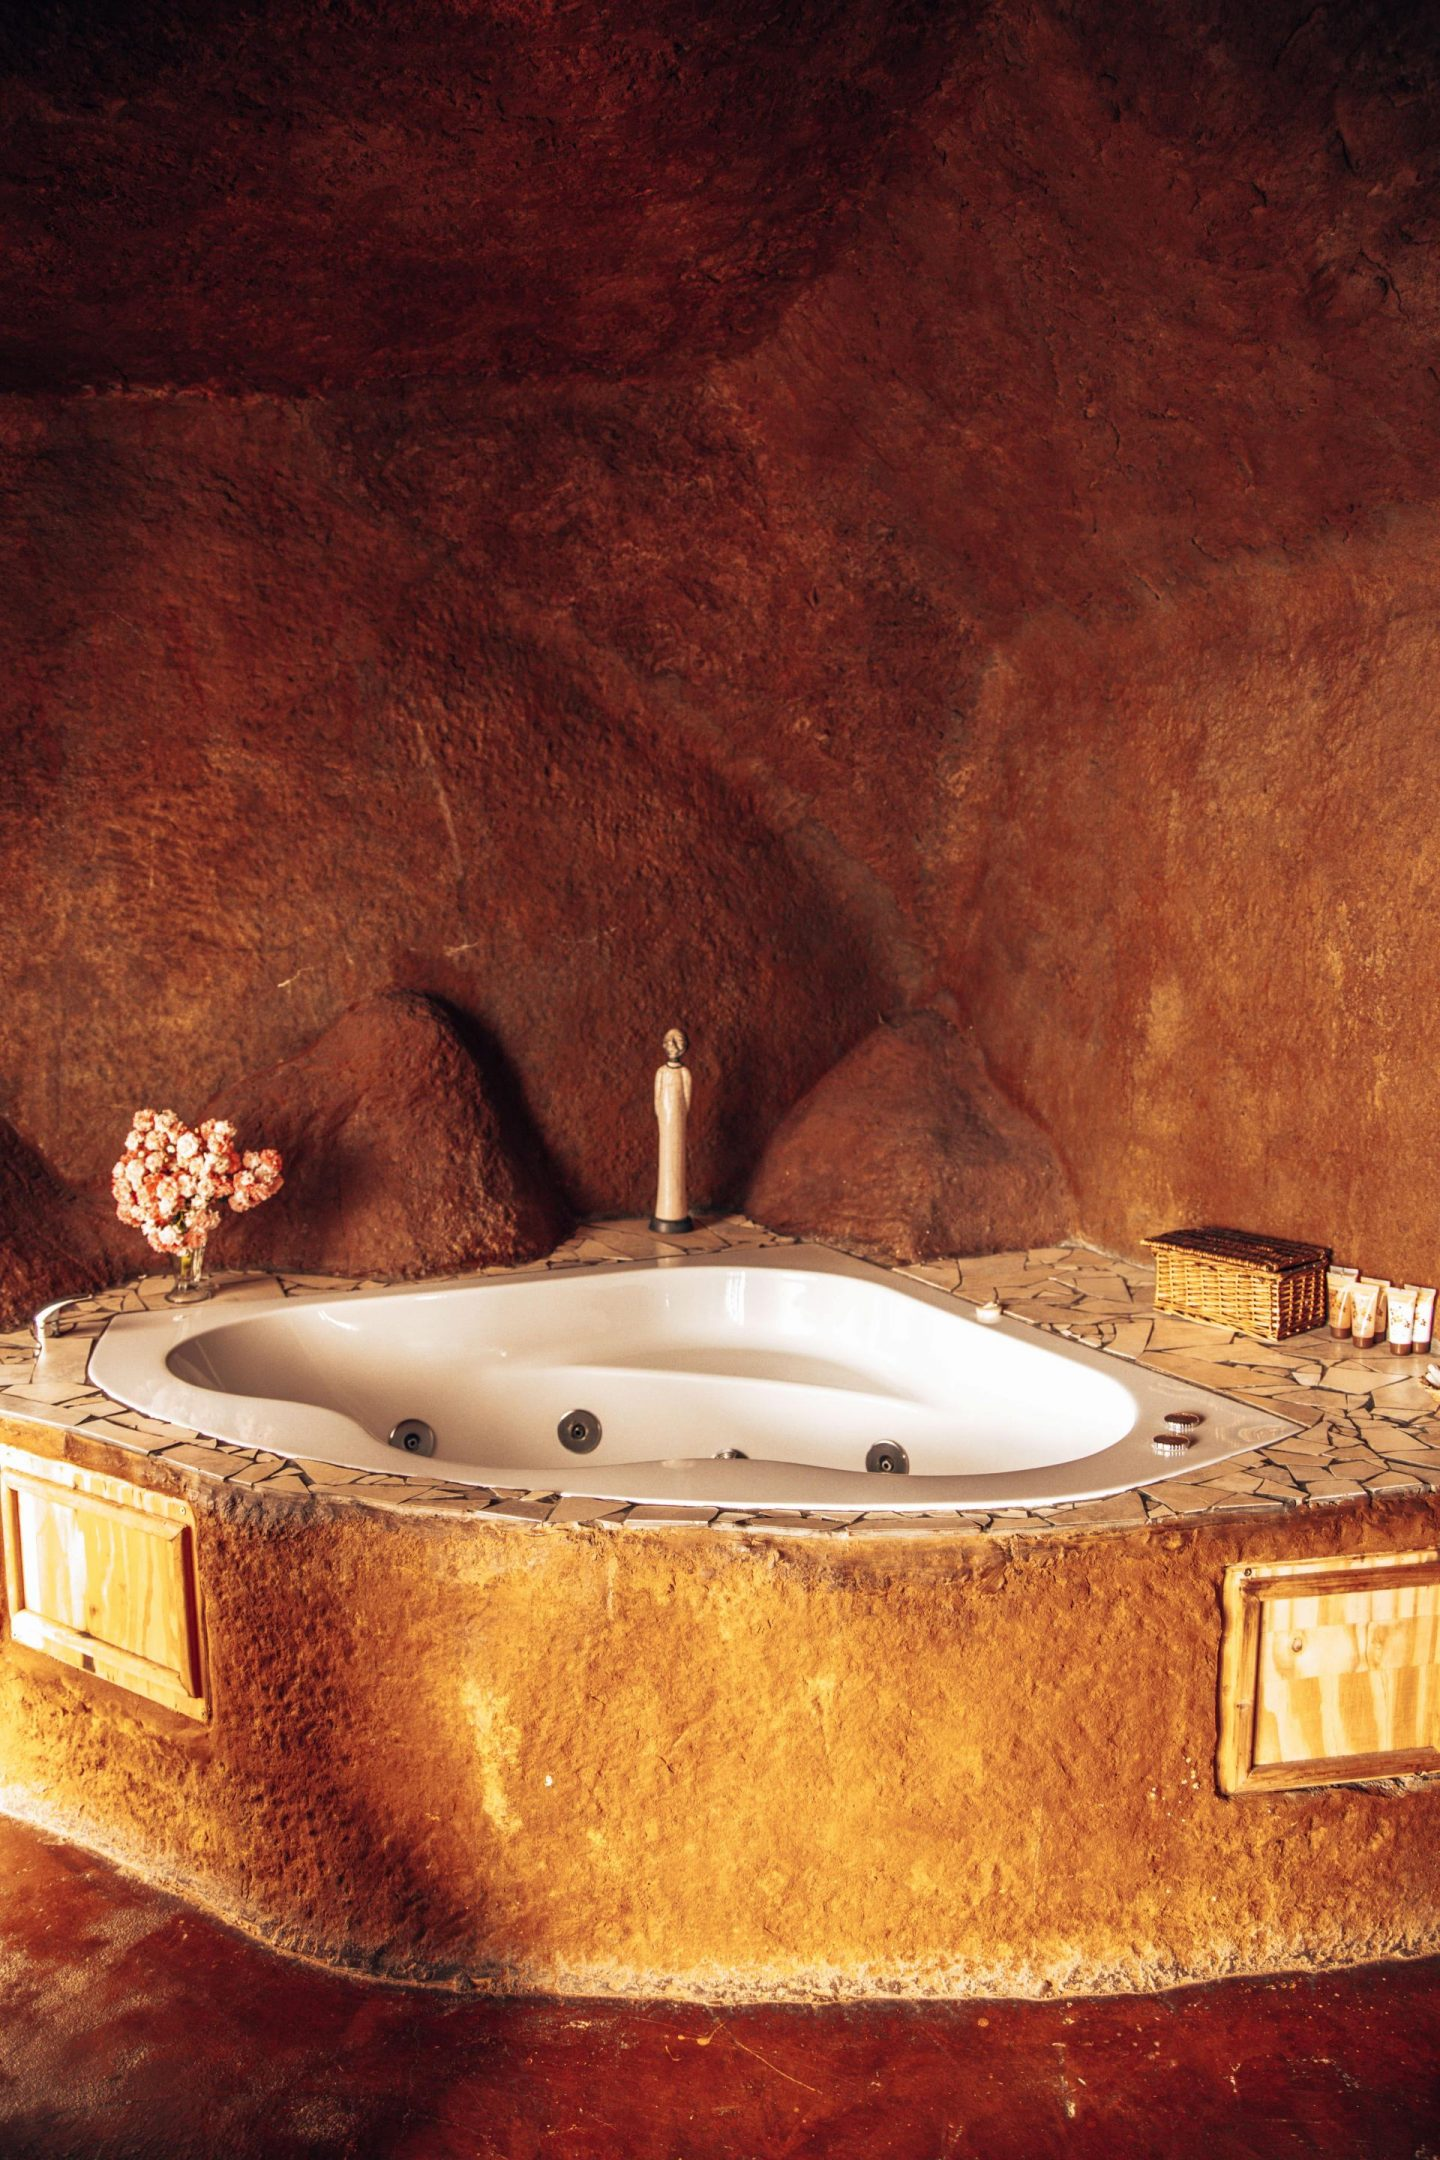 Bathtub in the cave